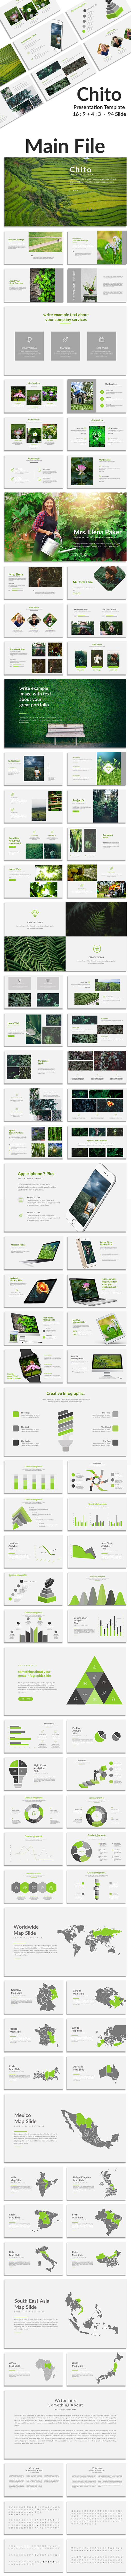 Chito Multipurpose PowerPoint Template - Creative PowerPoint Templates